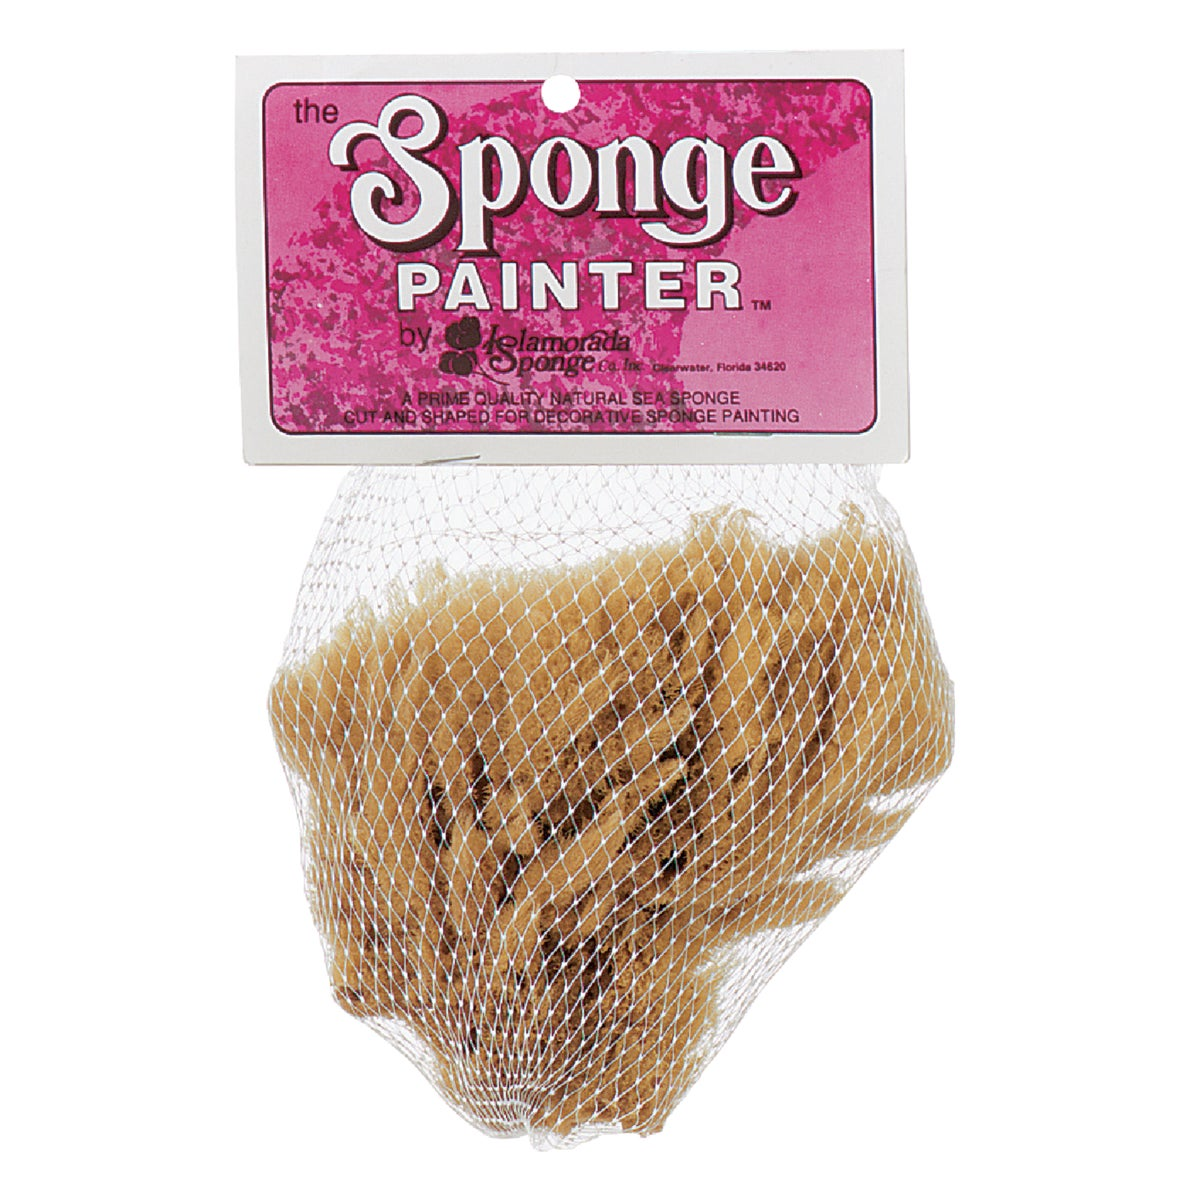 "6-7"" PAINT SPONGE - 10131 by Trimaco L L C"